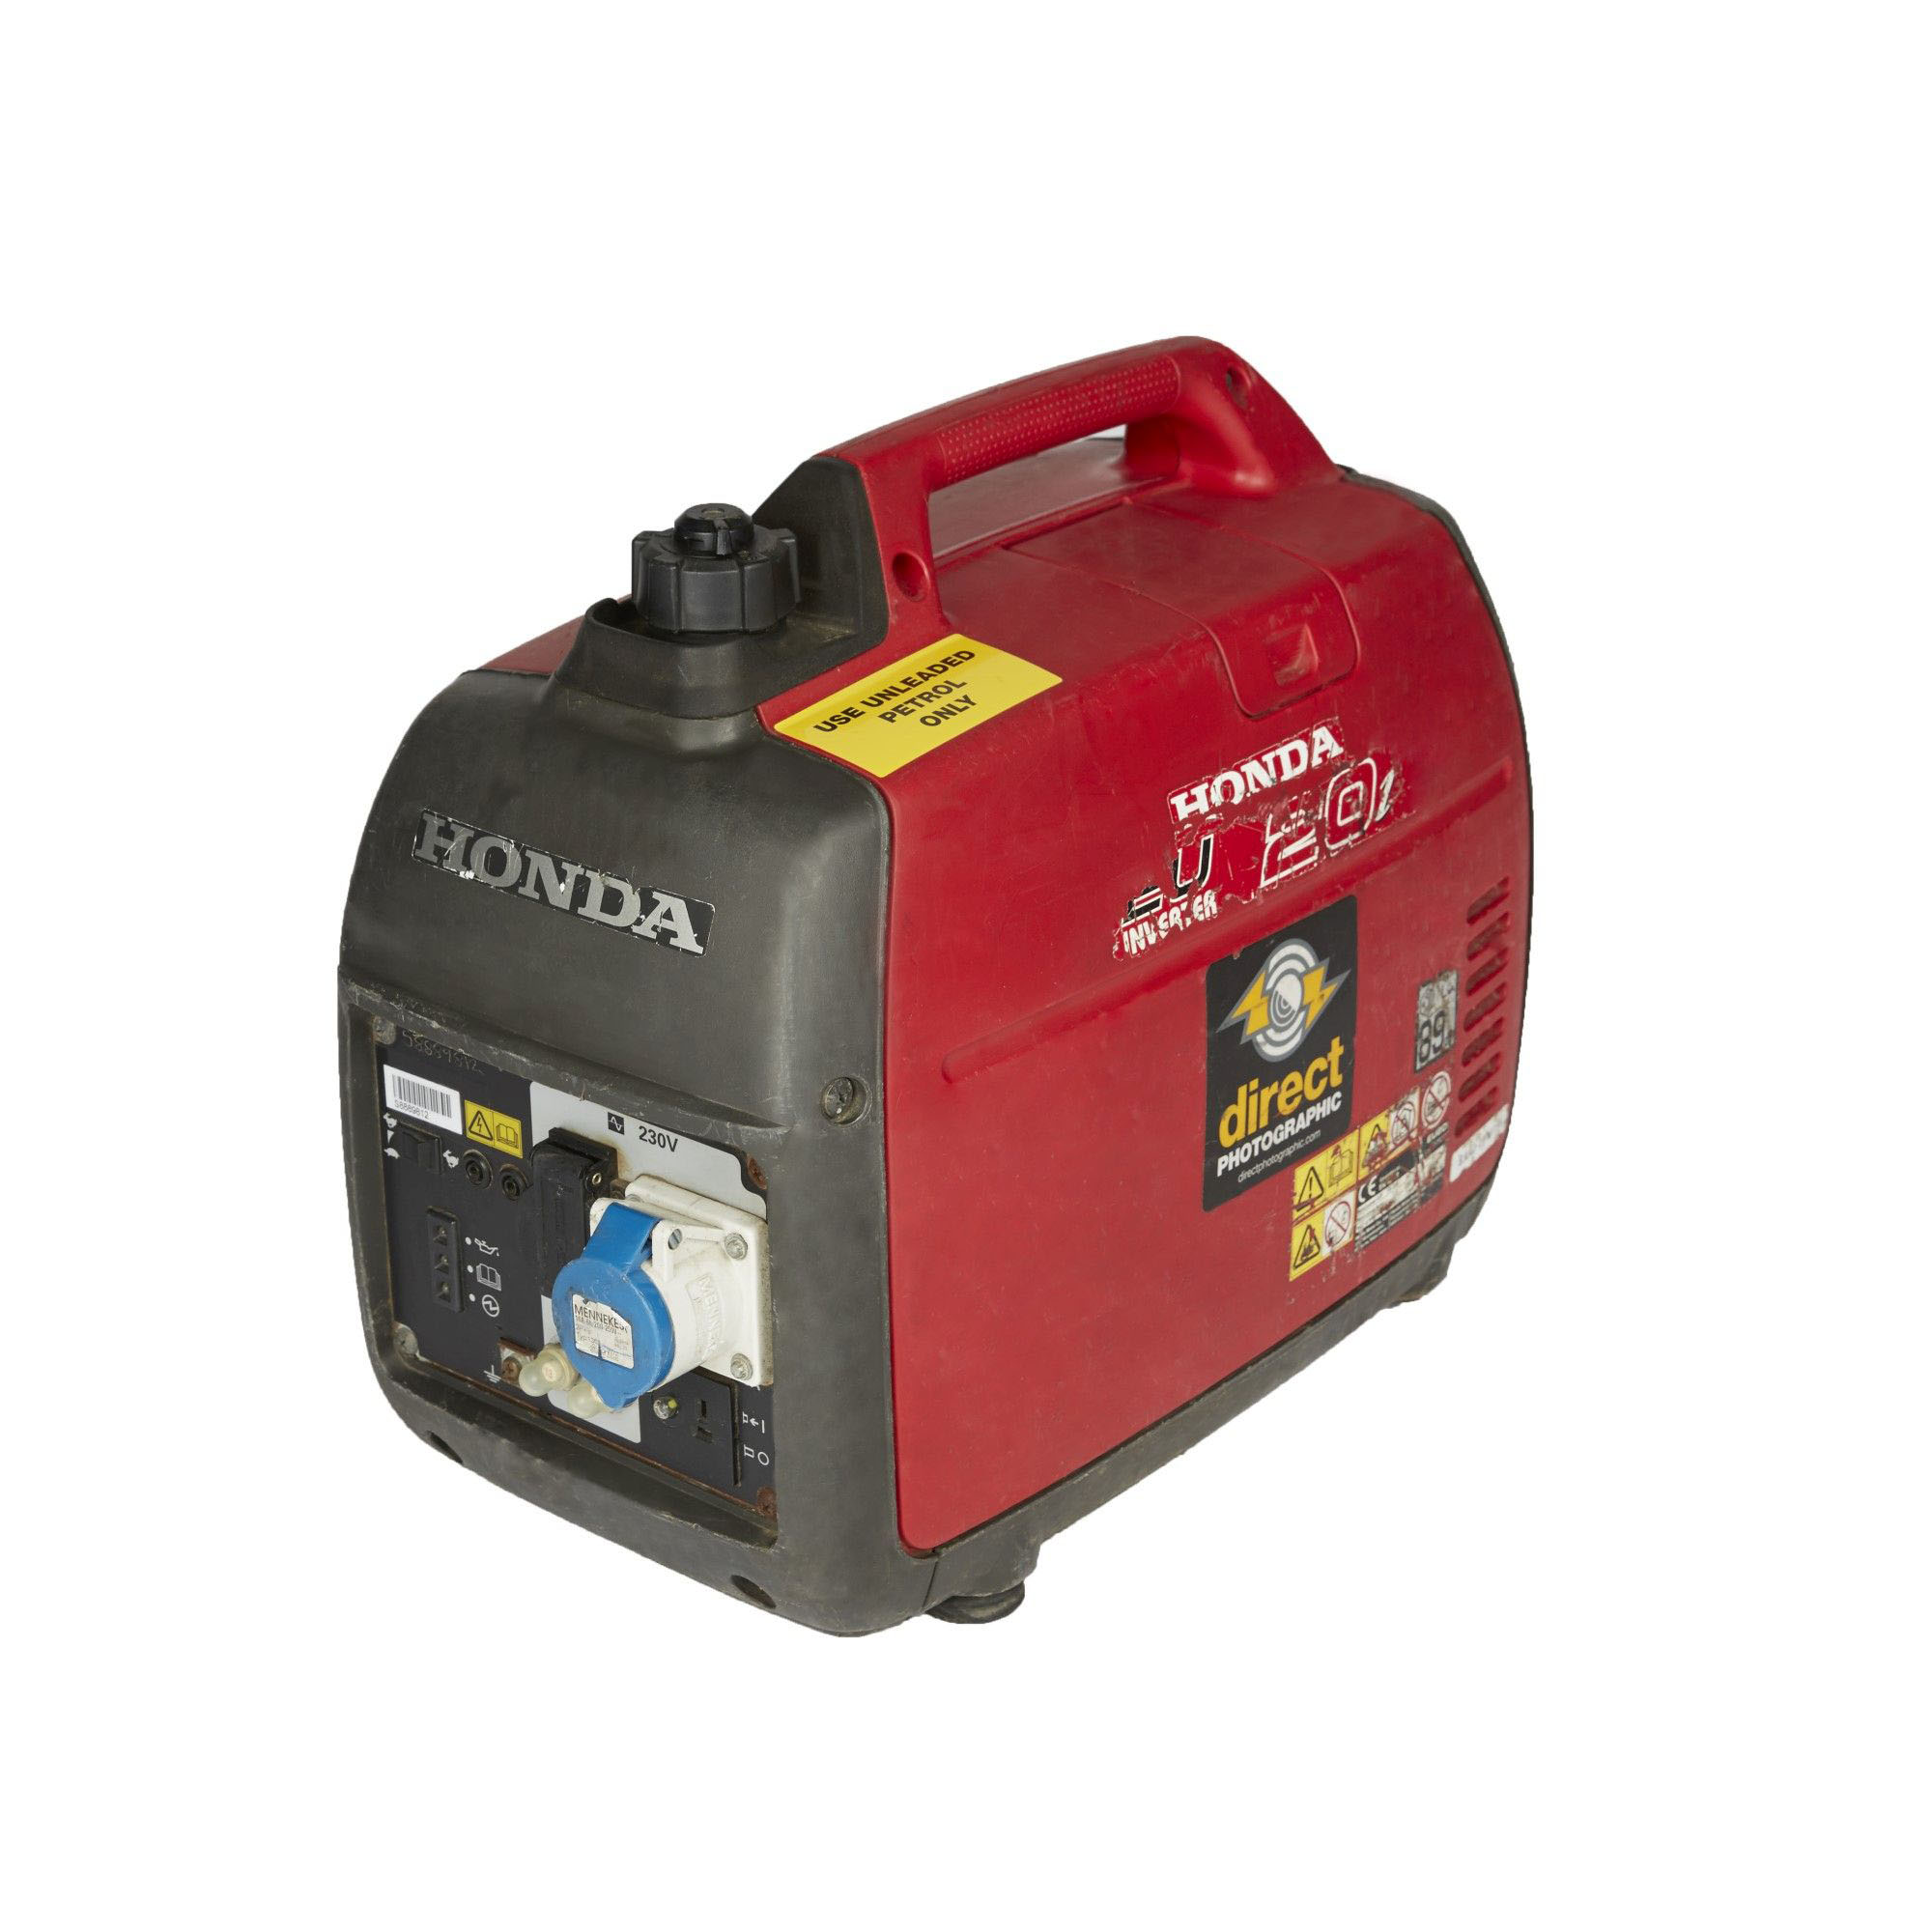 Honda 2kW EU20is Generator - Unleaded